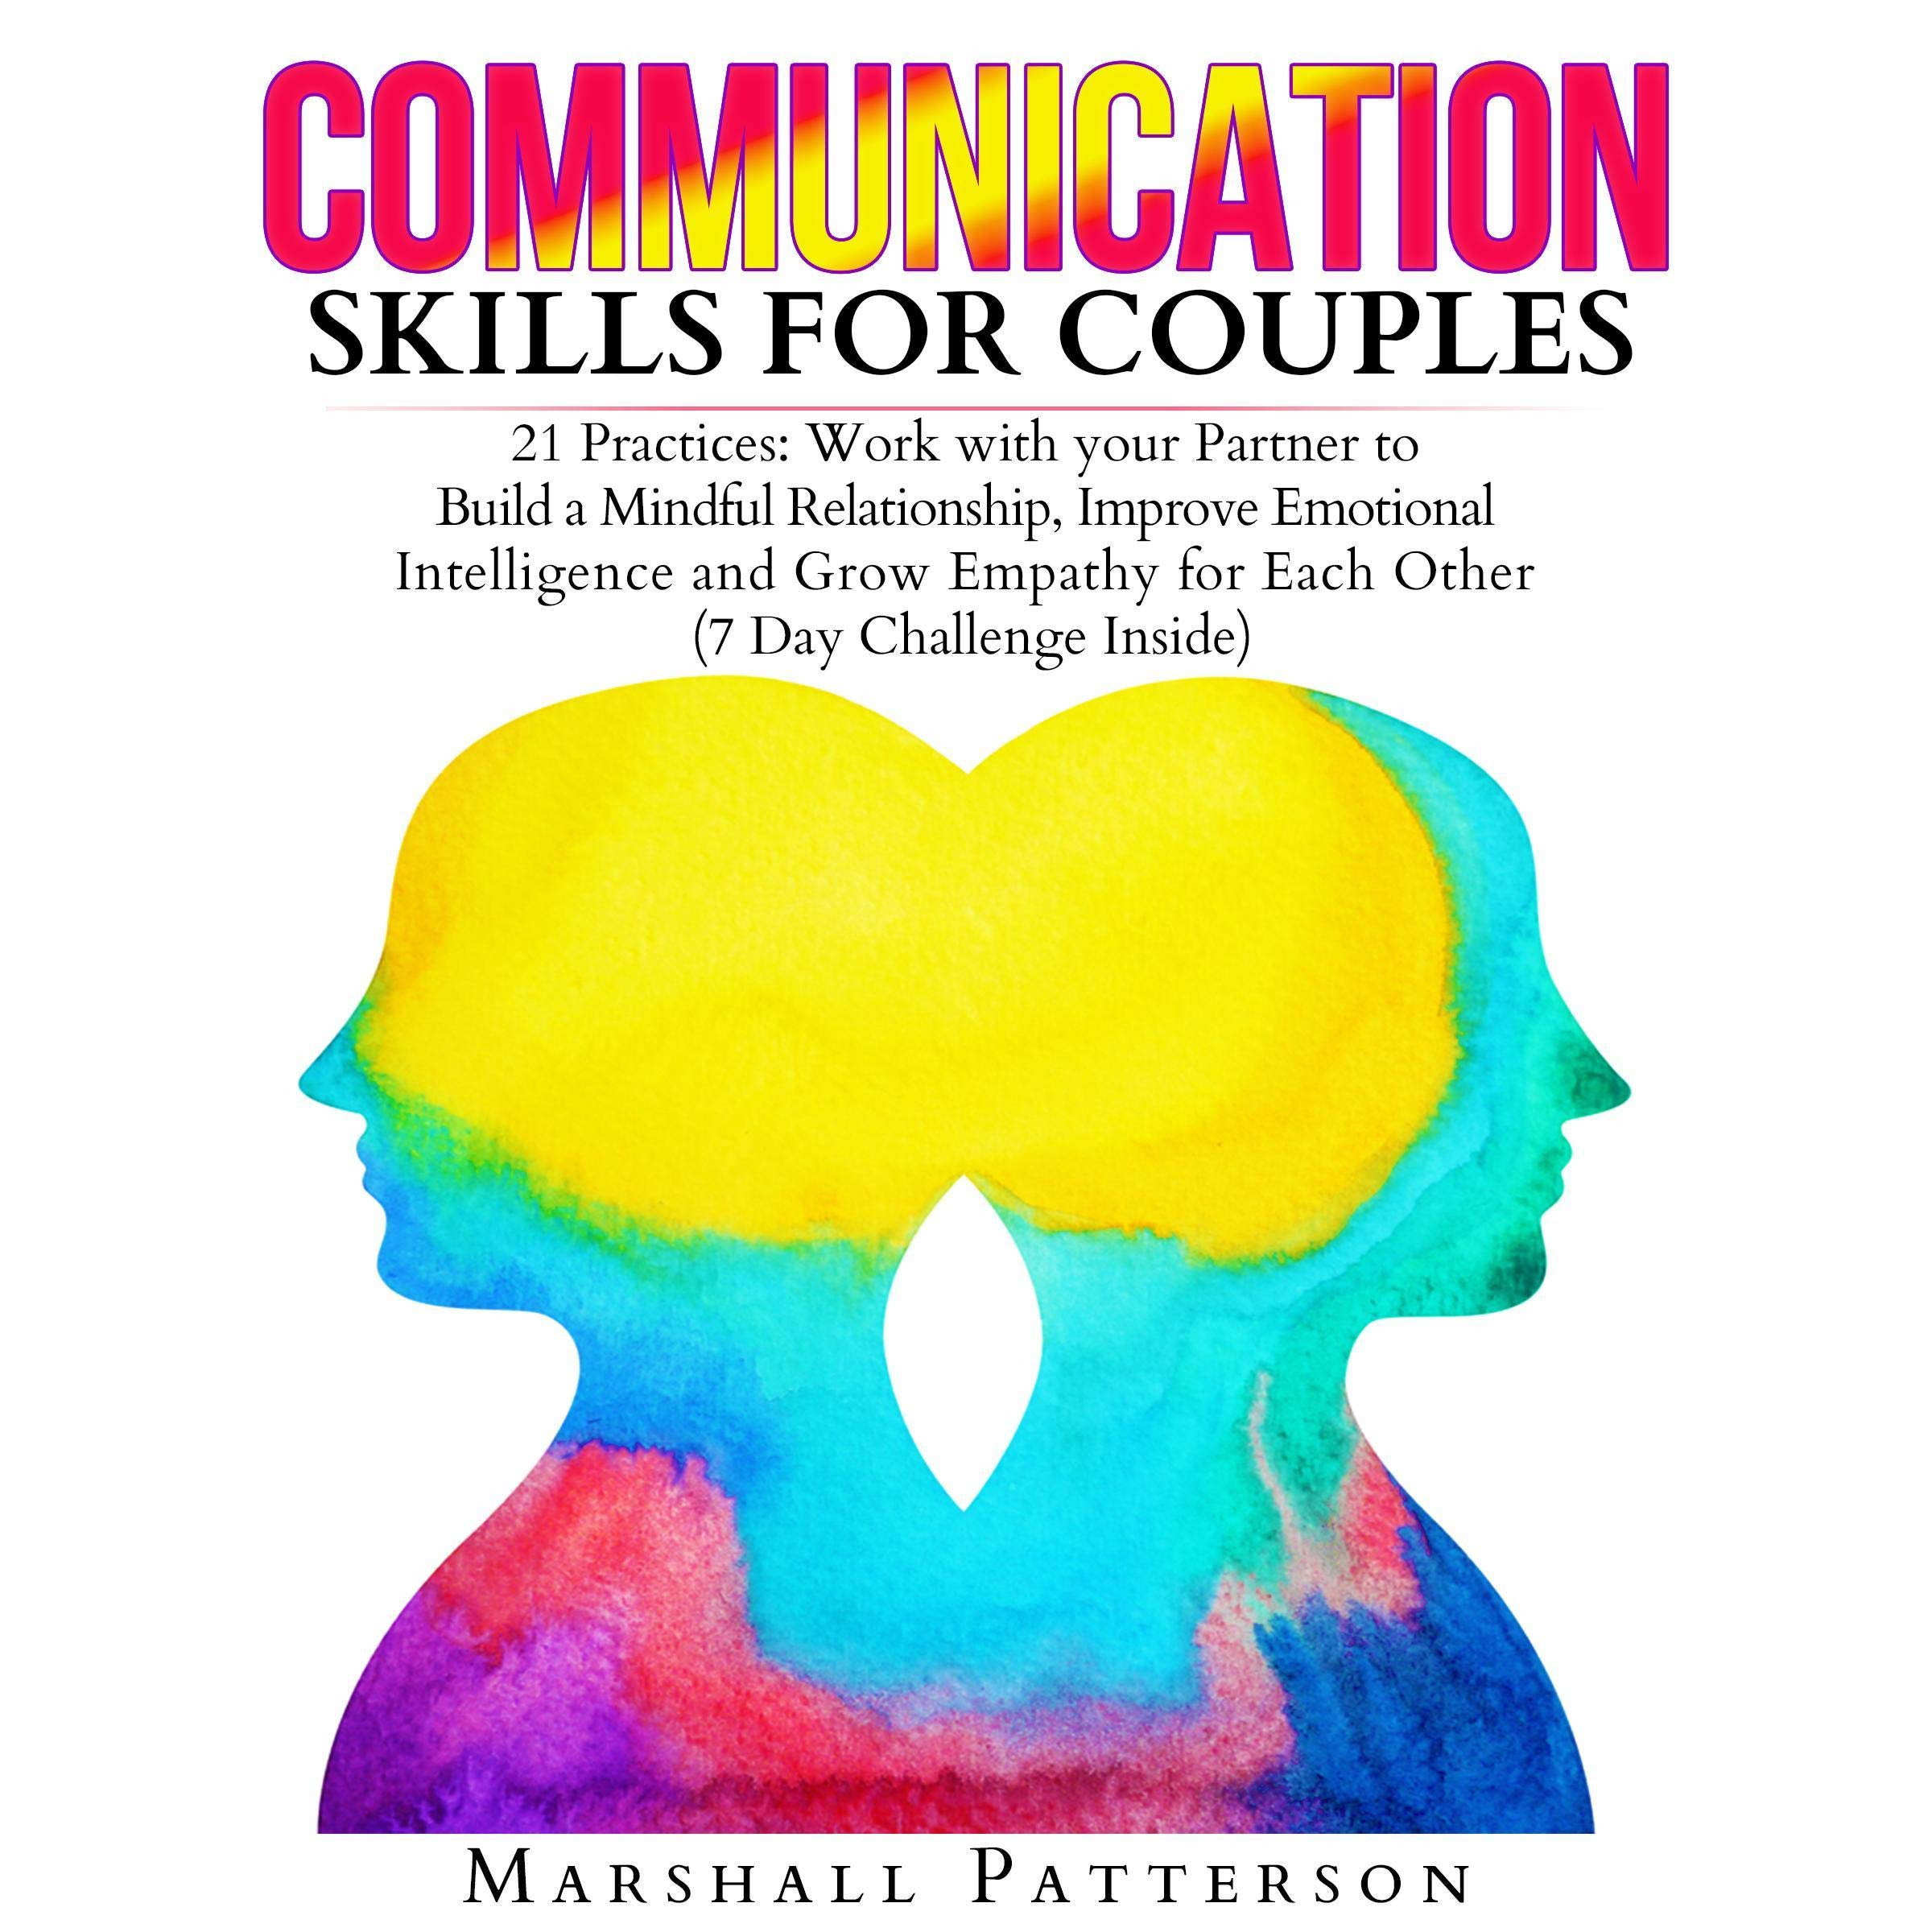 Image OfCommunication Skills For Couples: 21 Practices: Work With Your Partner To Build A Mindful Relationship, Improve Emotional ...